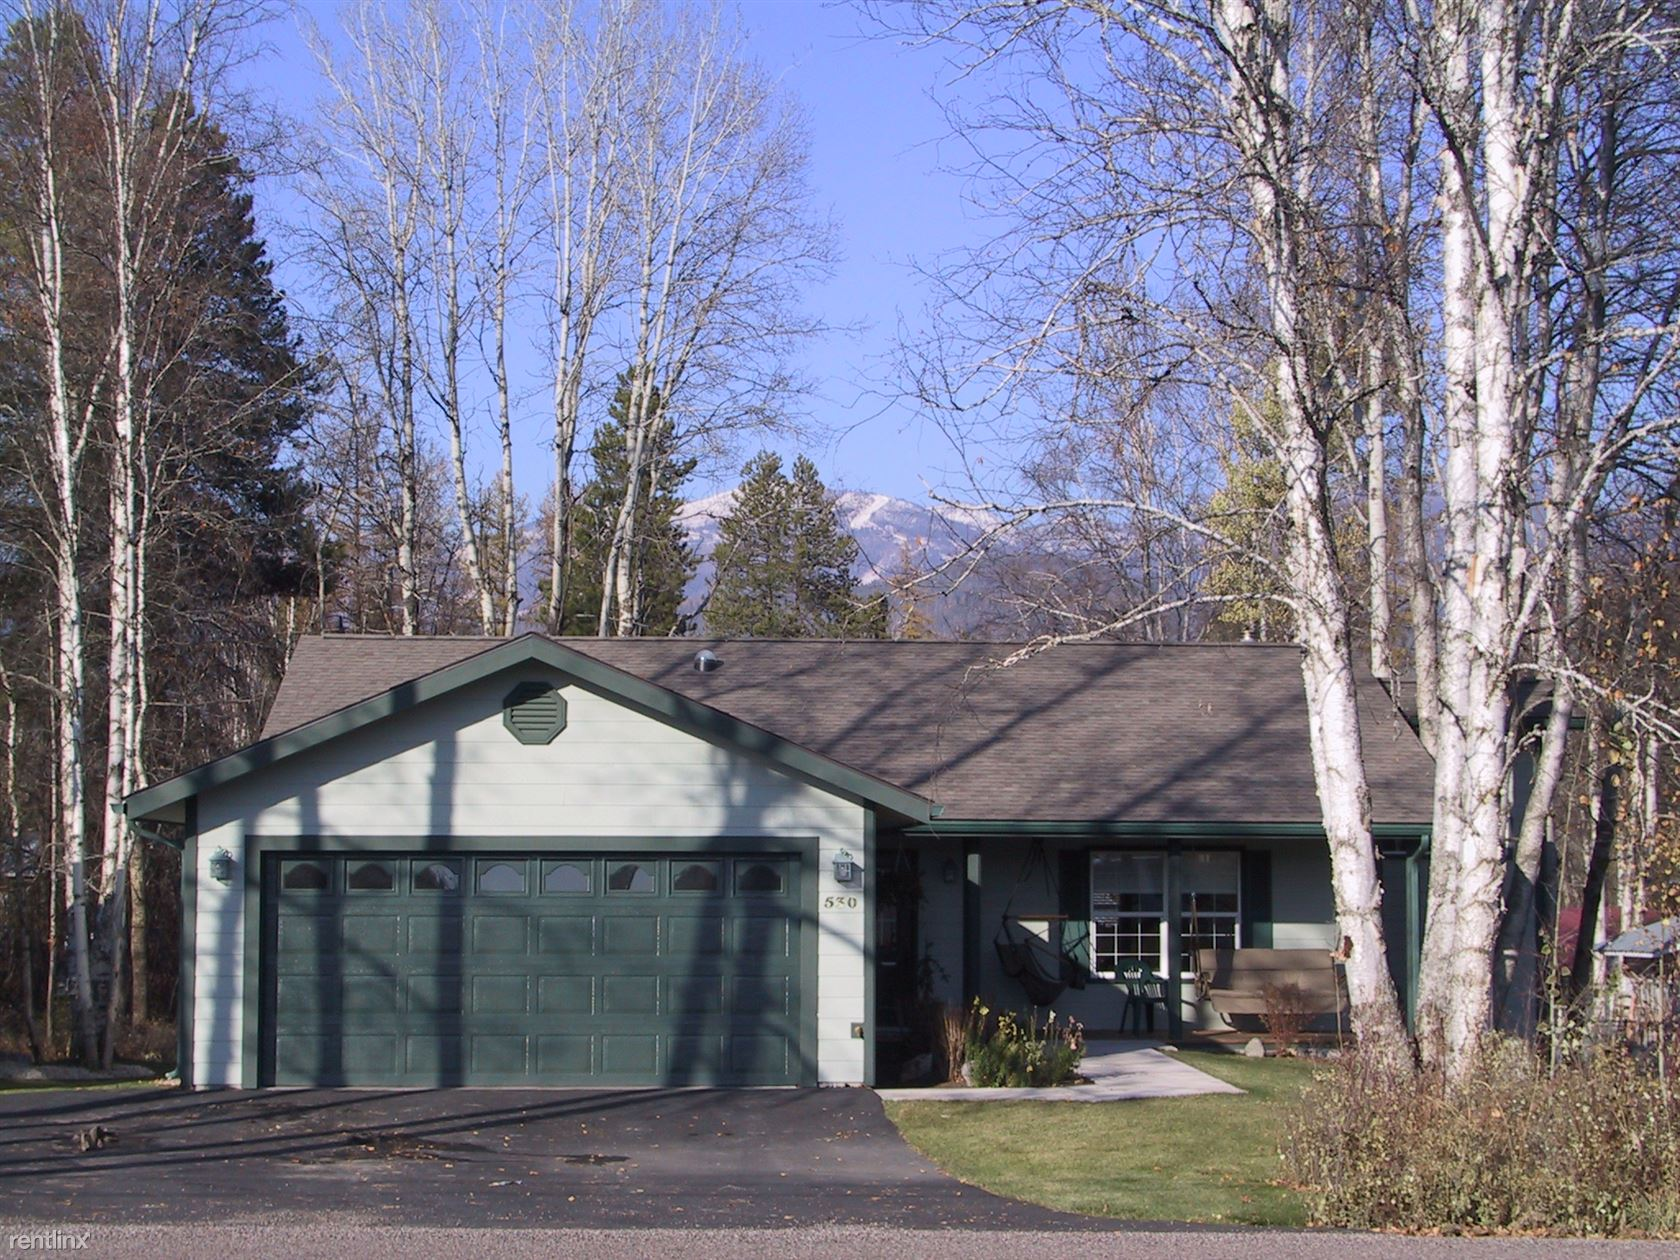 530 Glenwood Road, Whitefish, MT - $2,200